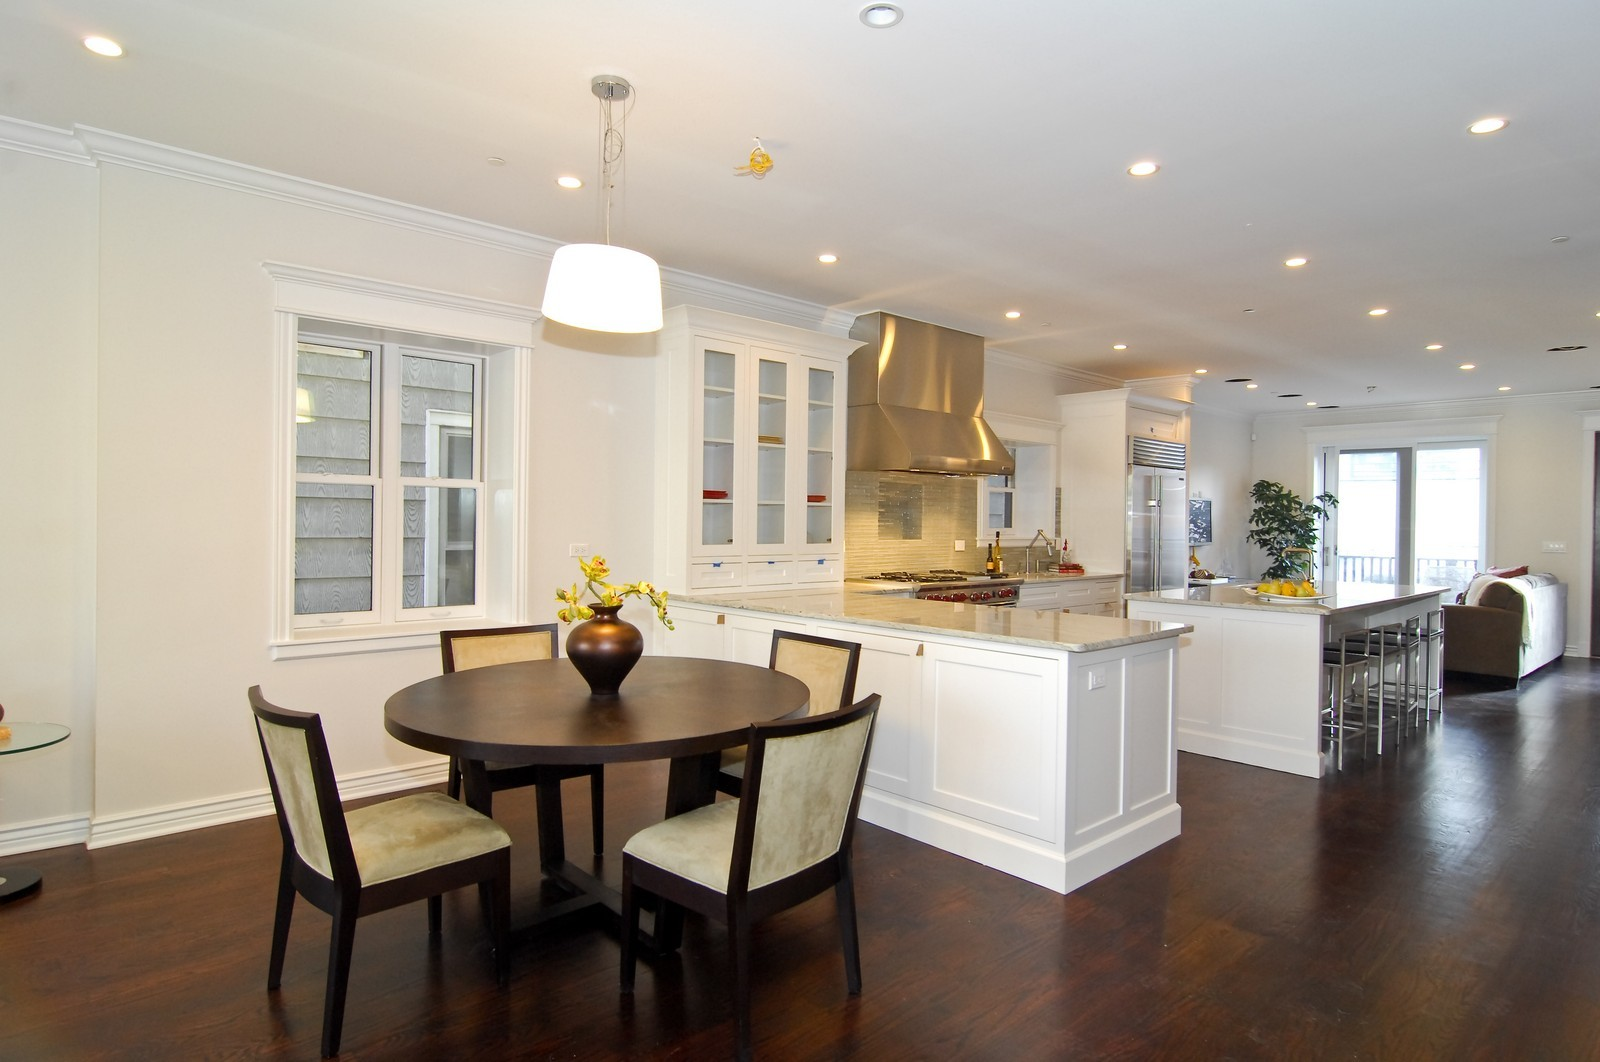 Real Estate Photography - 1845 W. Newport, Chicago, IL, 60657 - Kitchen / Dining Room